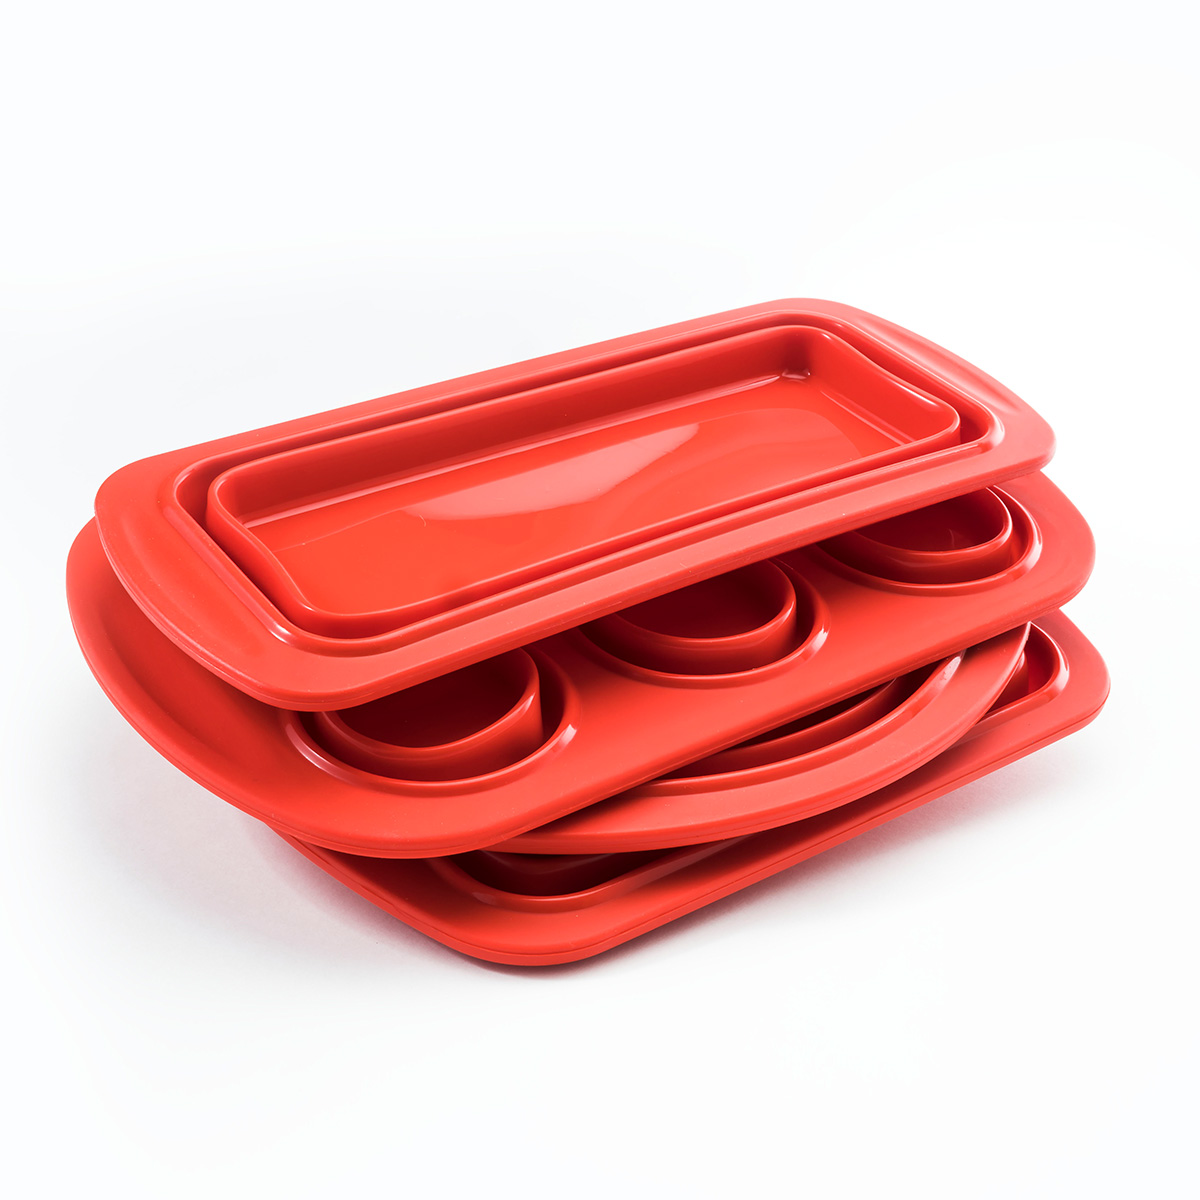 Cook-039-s-Companion-4-Piece-Collapsible-Silicone-Bakeware-Set thumbnail 12